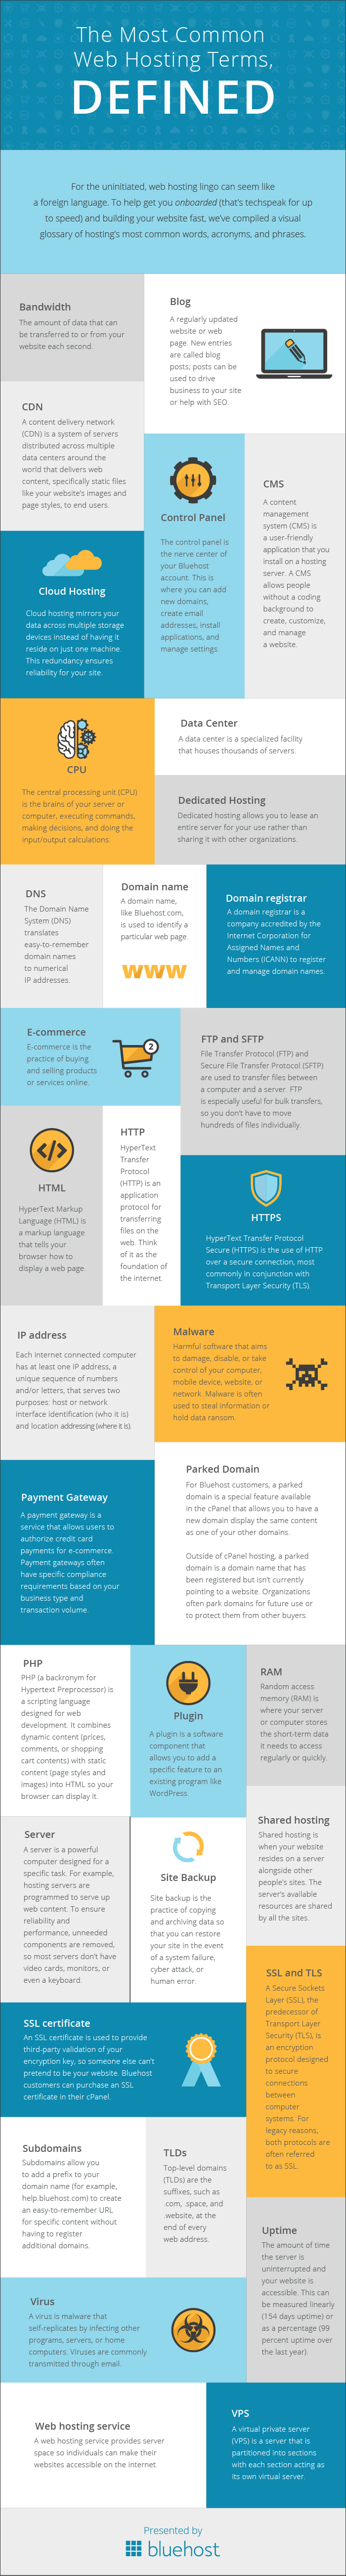 A listing of common web hosting terms and their definitions